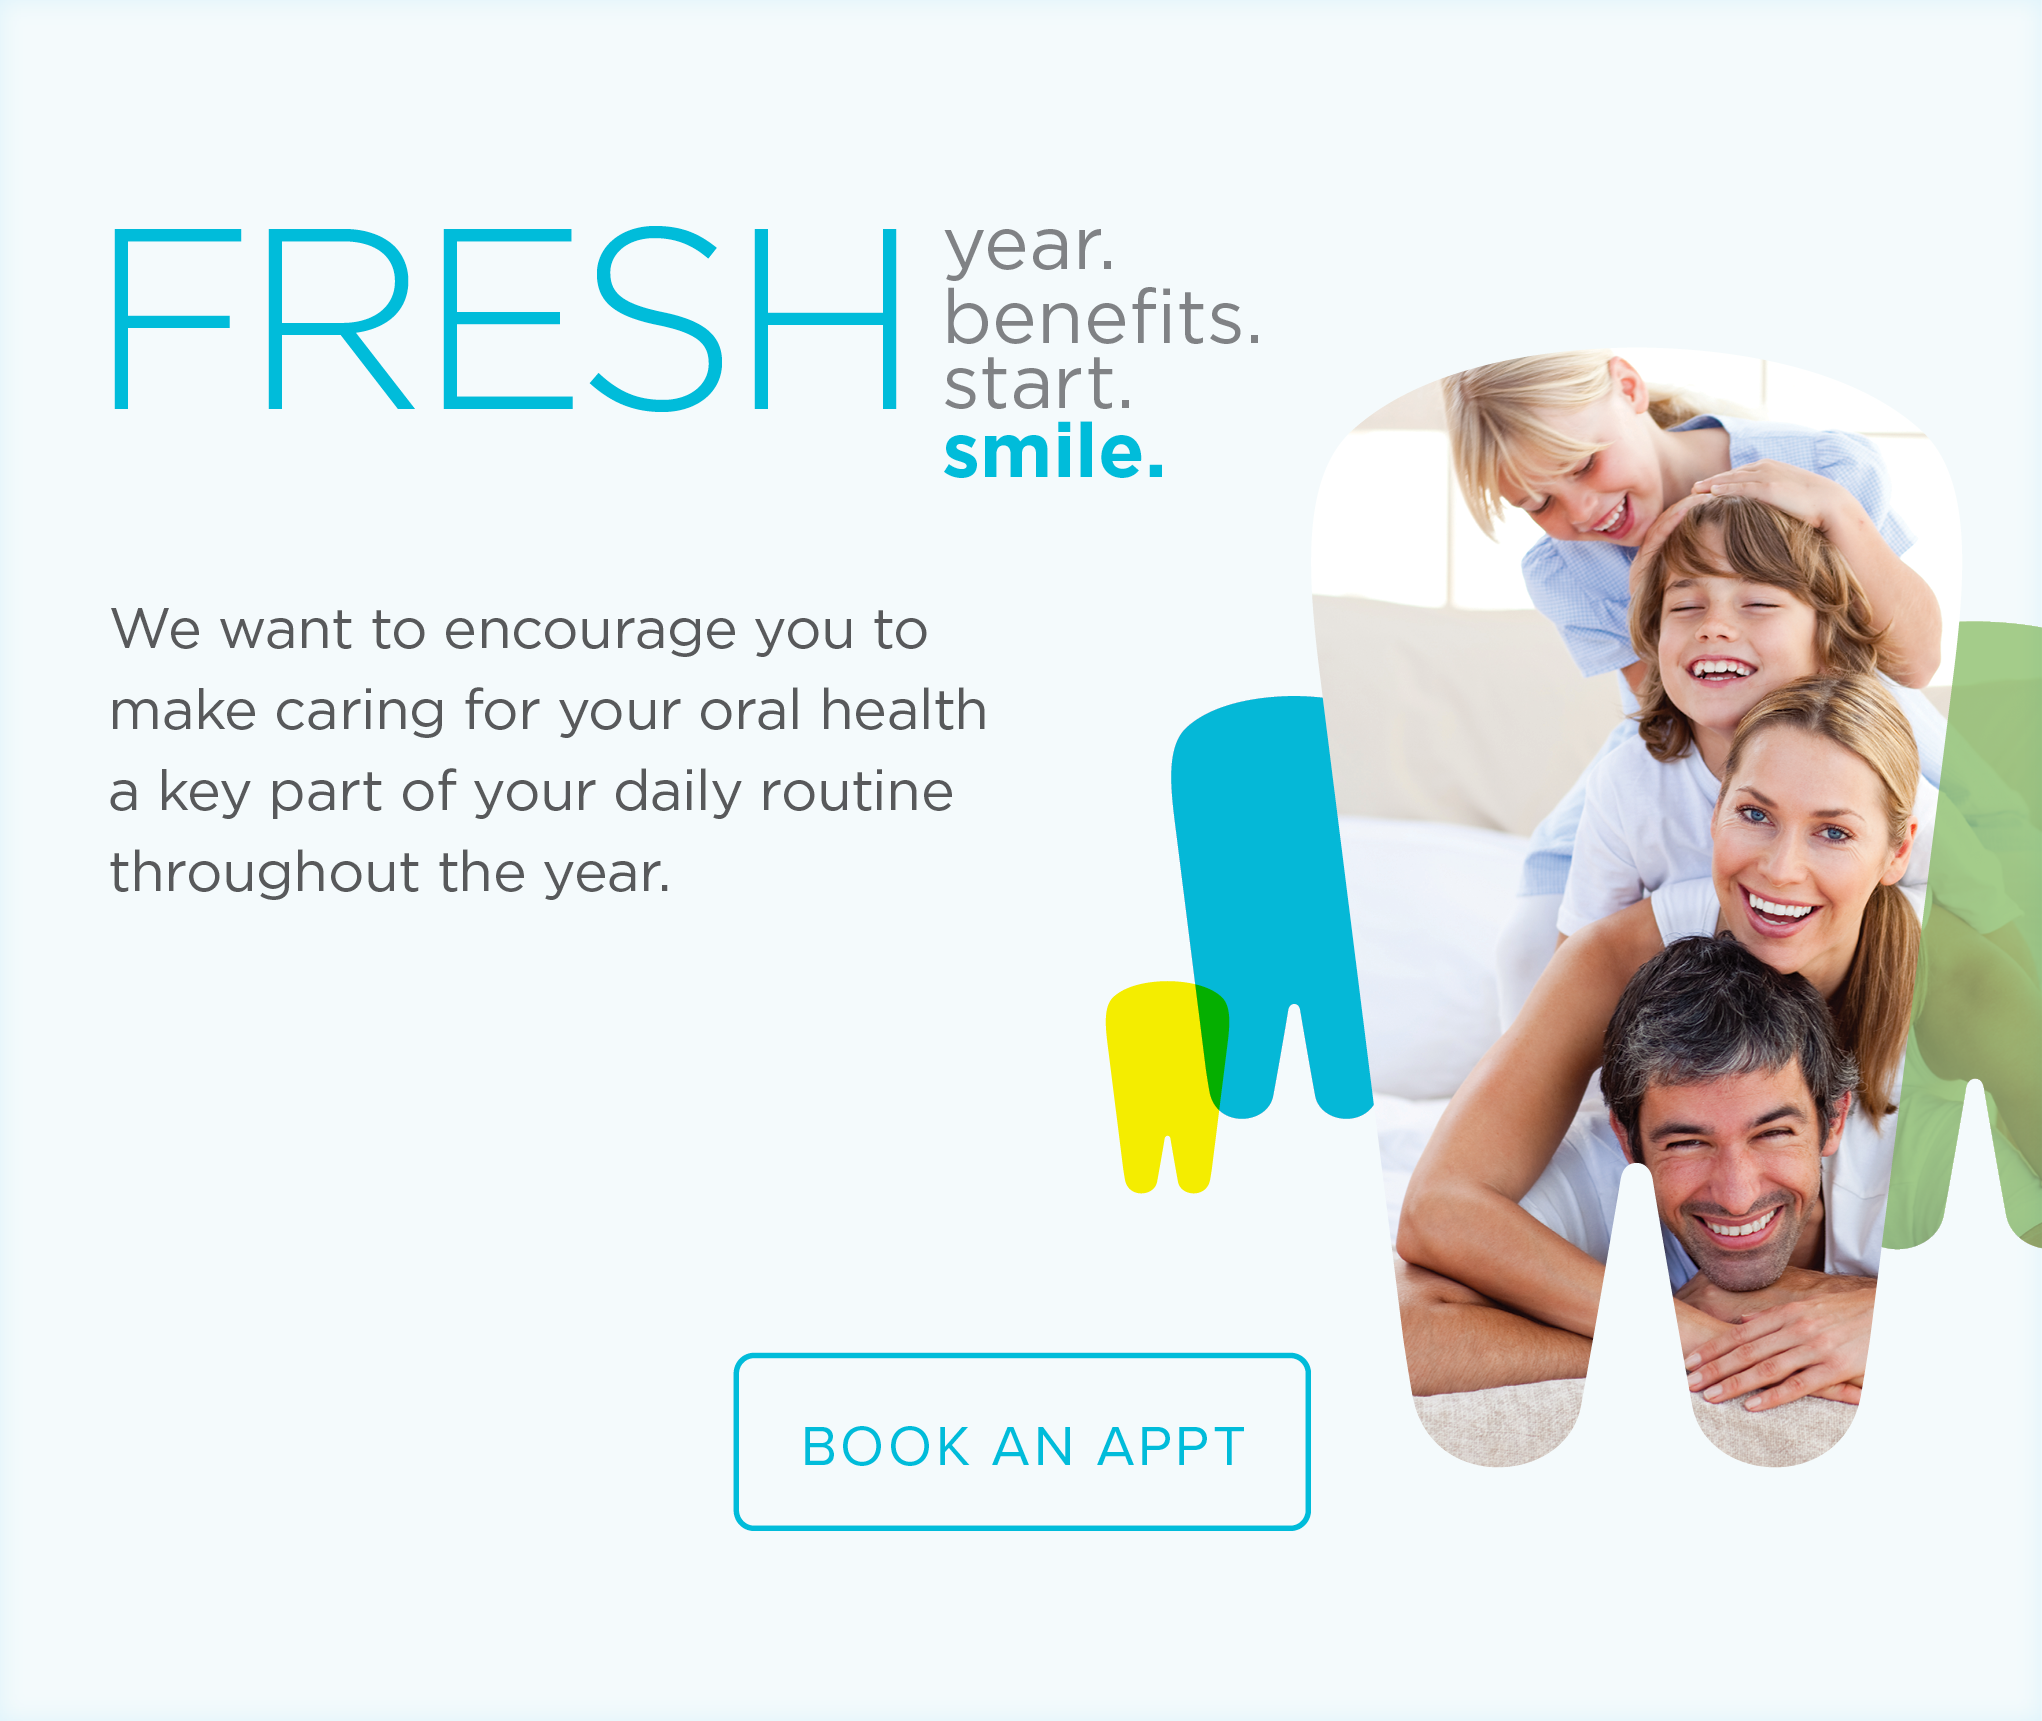 Catalina Smiles Dentistry - Make the Most of Your Benefits